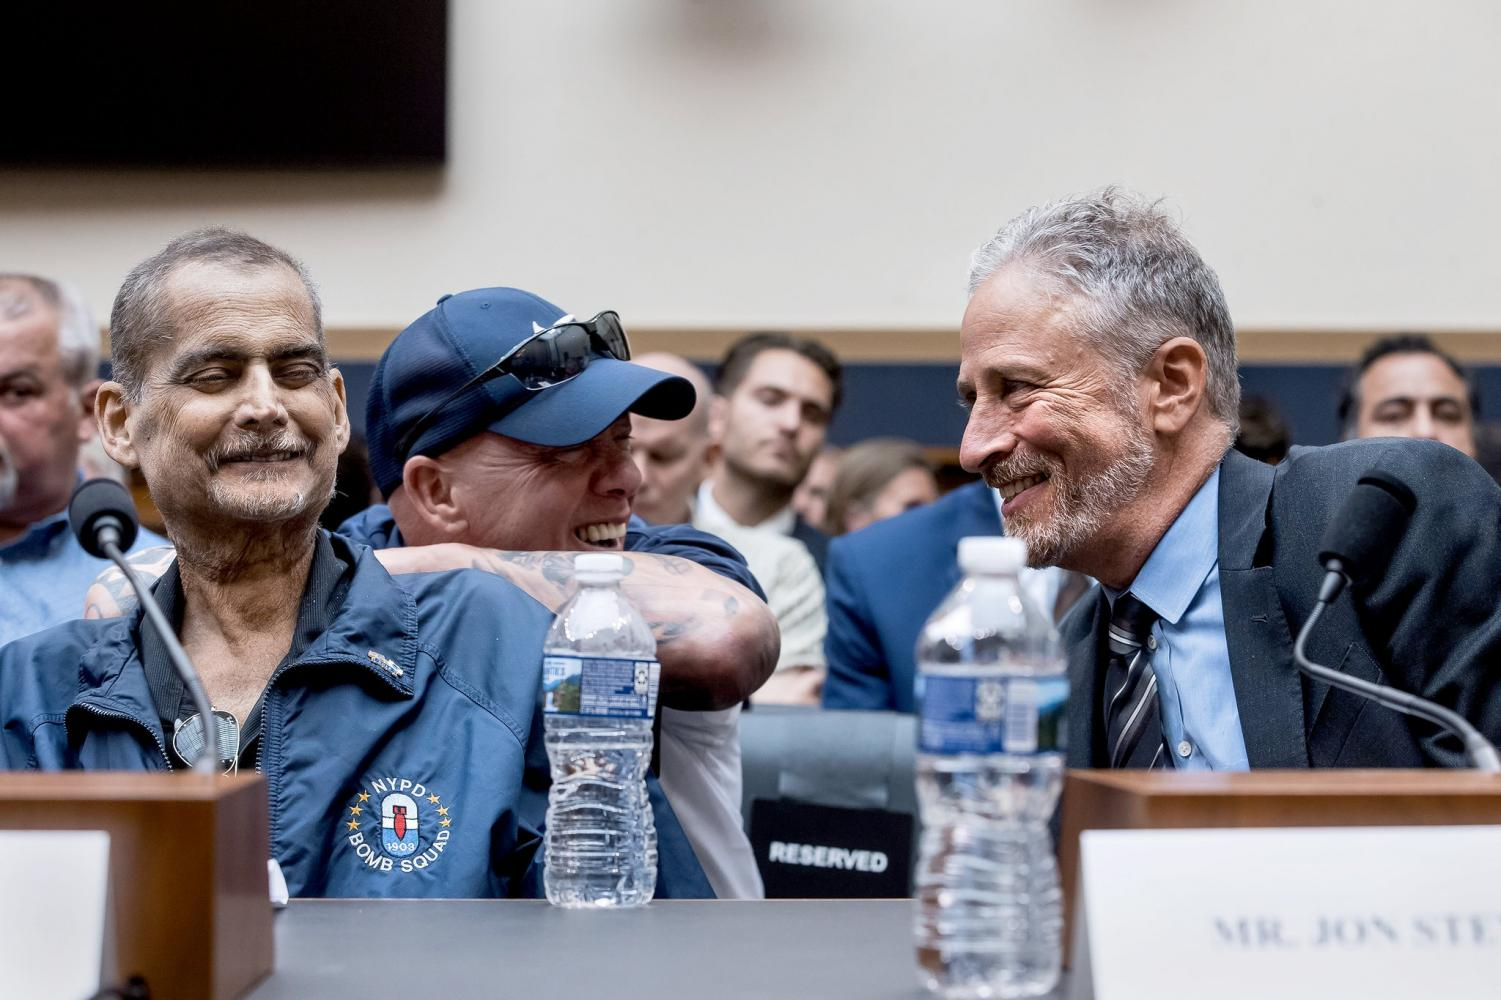 Luis Alvarez (left) and John Stewart (right) at the Congressional hearing for the 9/11 fund. Photo by Zach Gibson.